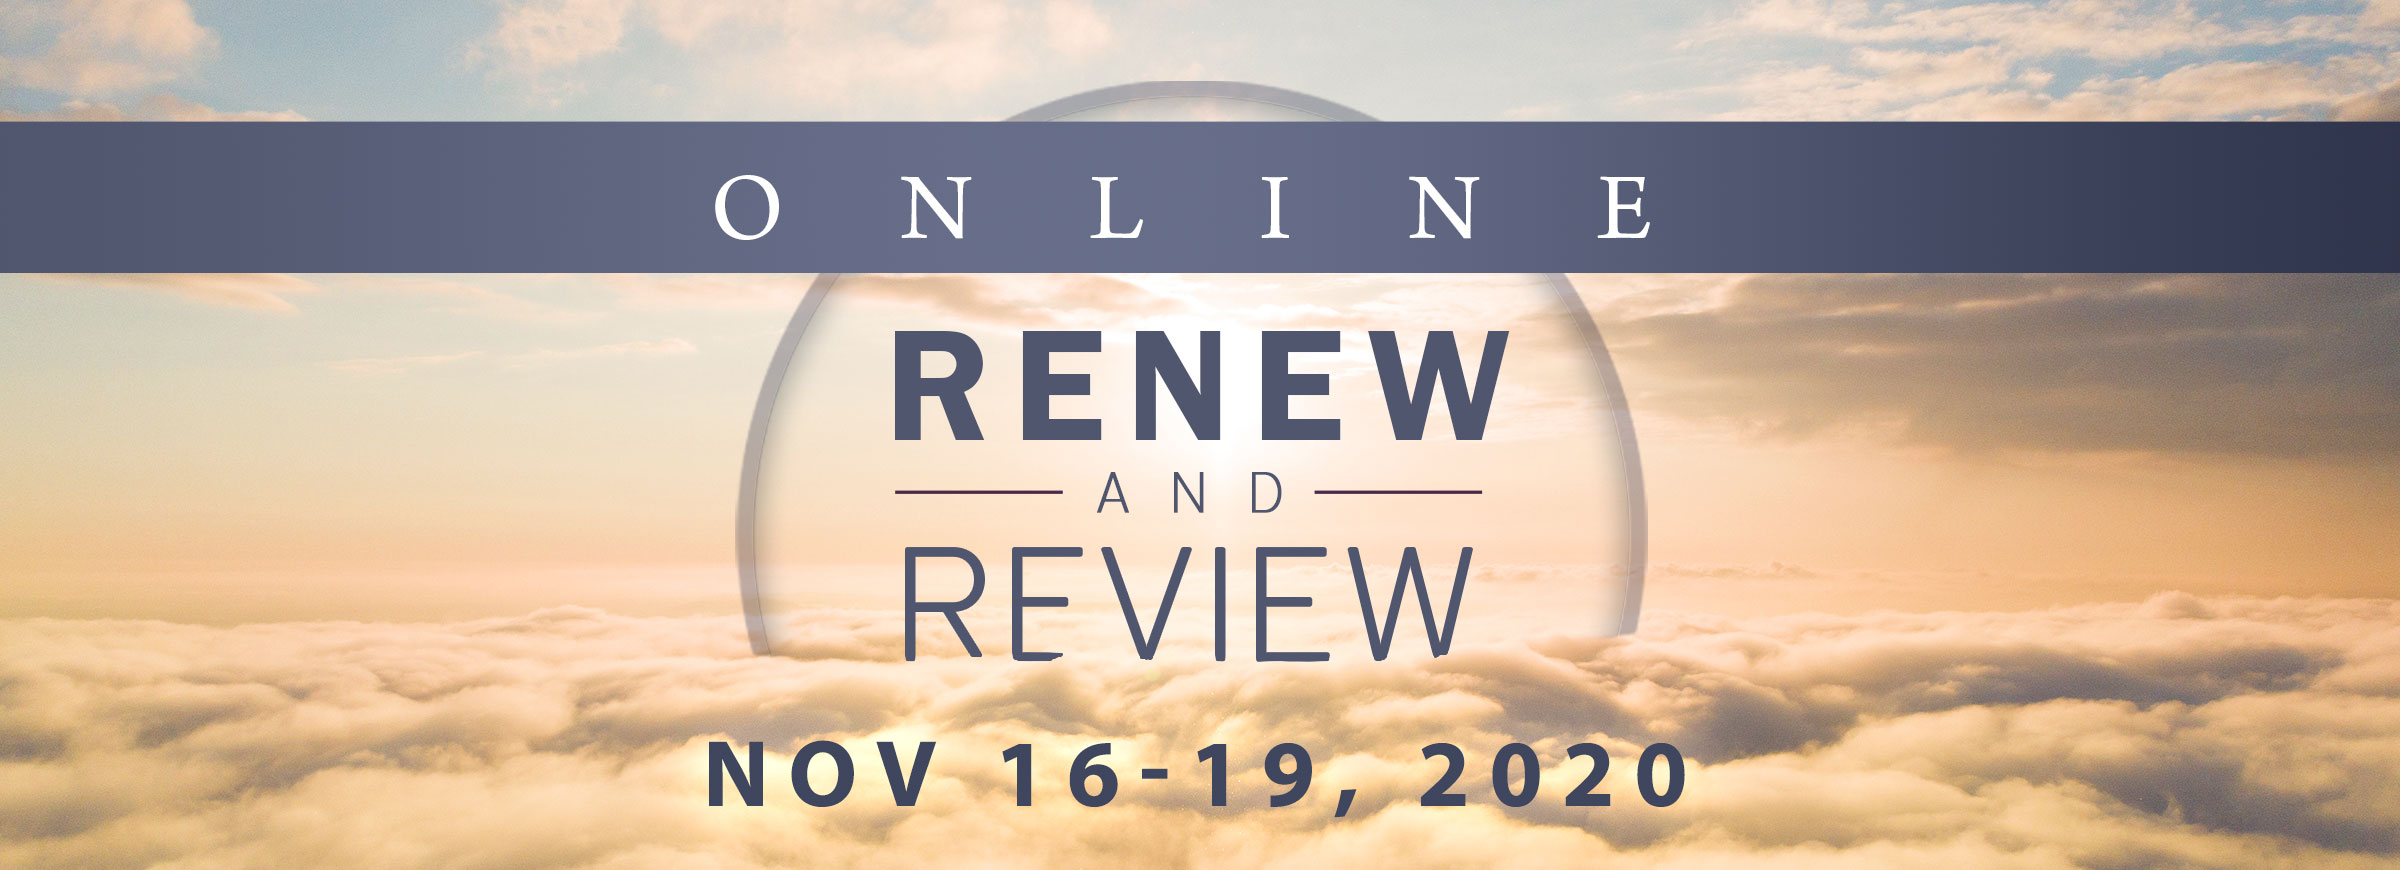 Renew and Review Online Nov 2020